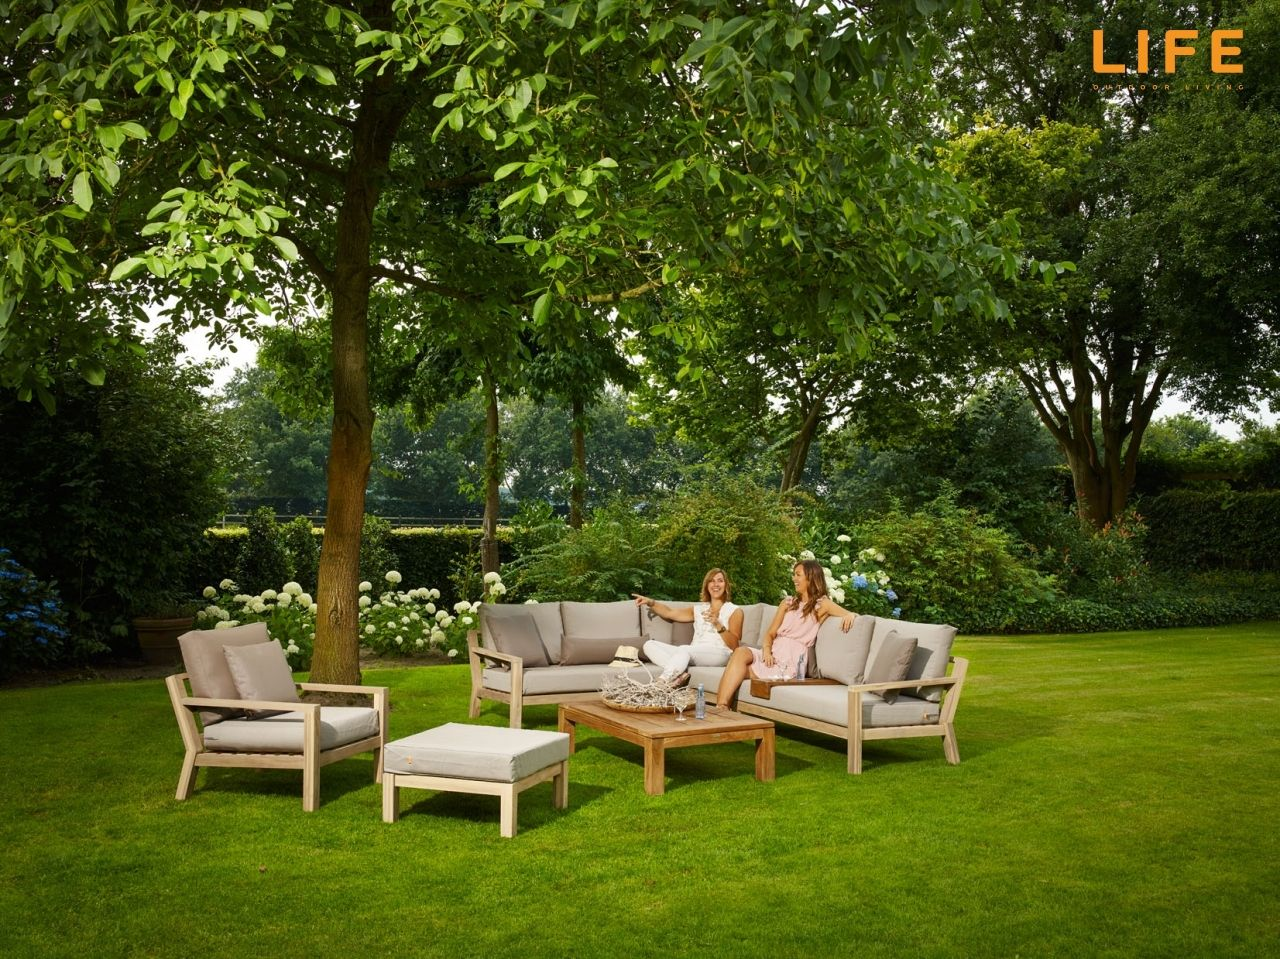 High Quality Lounge Set Timber Teak | Garden Furniture Collection | LIFE Outdoor Living Ideas